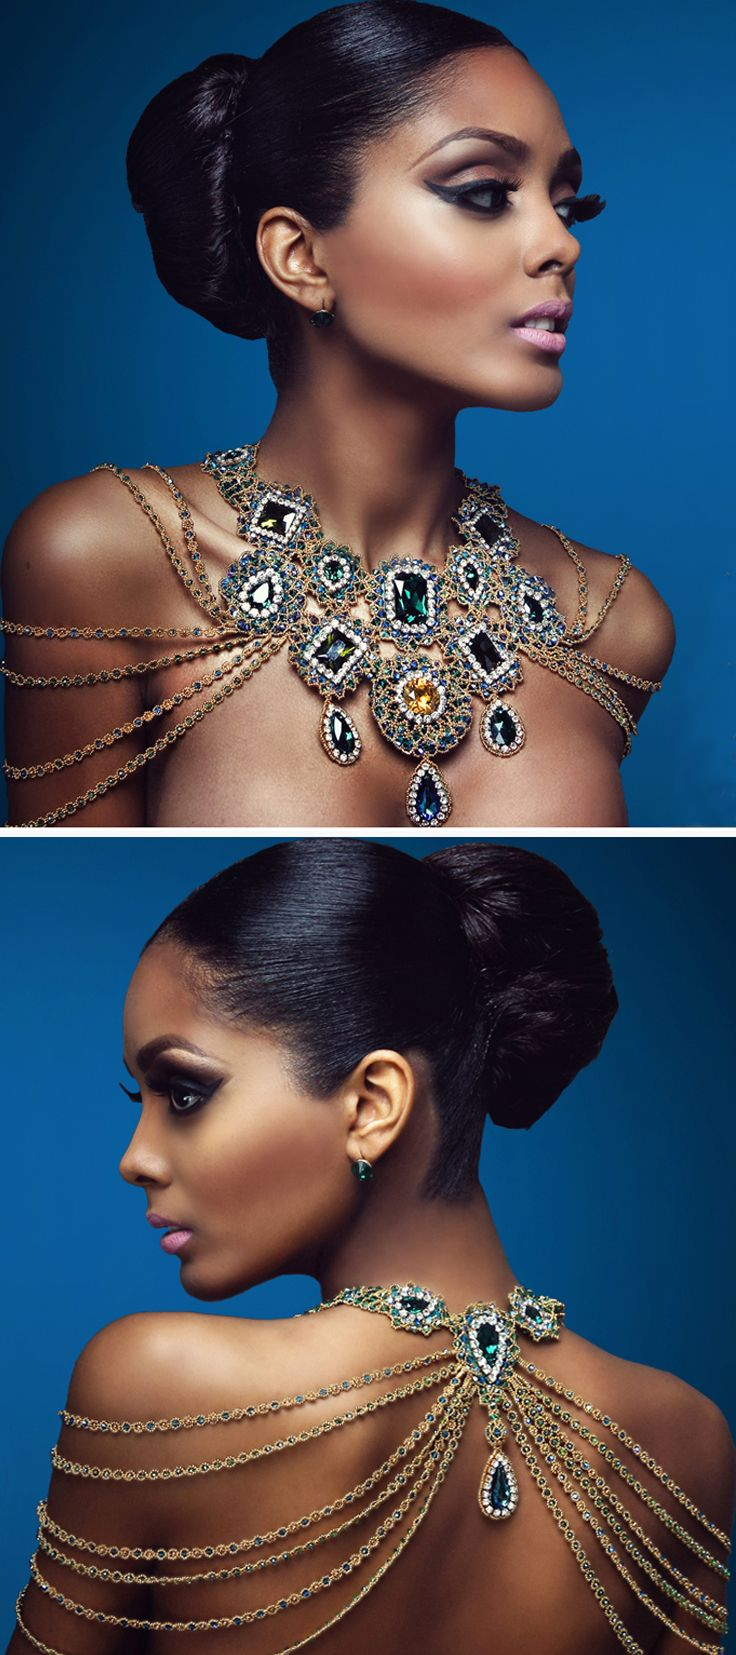 Neckpiece | Edgar López Designs. Like how the chains fall on the back and shoulders - not so much the glitz...